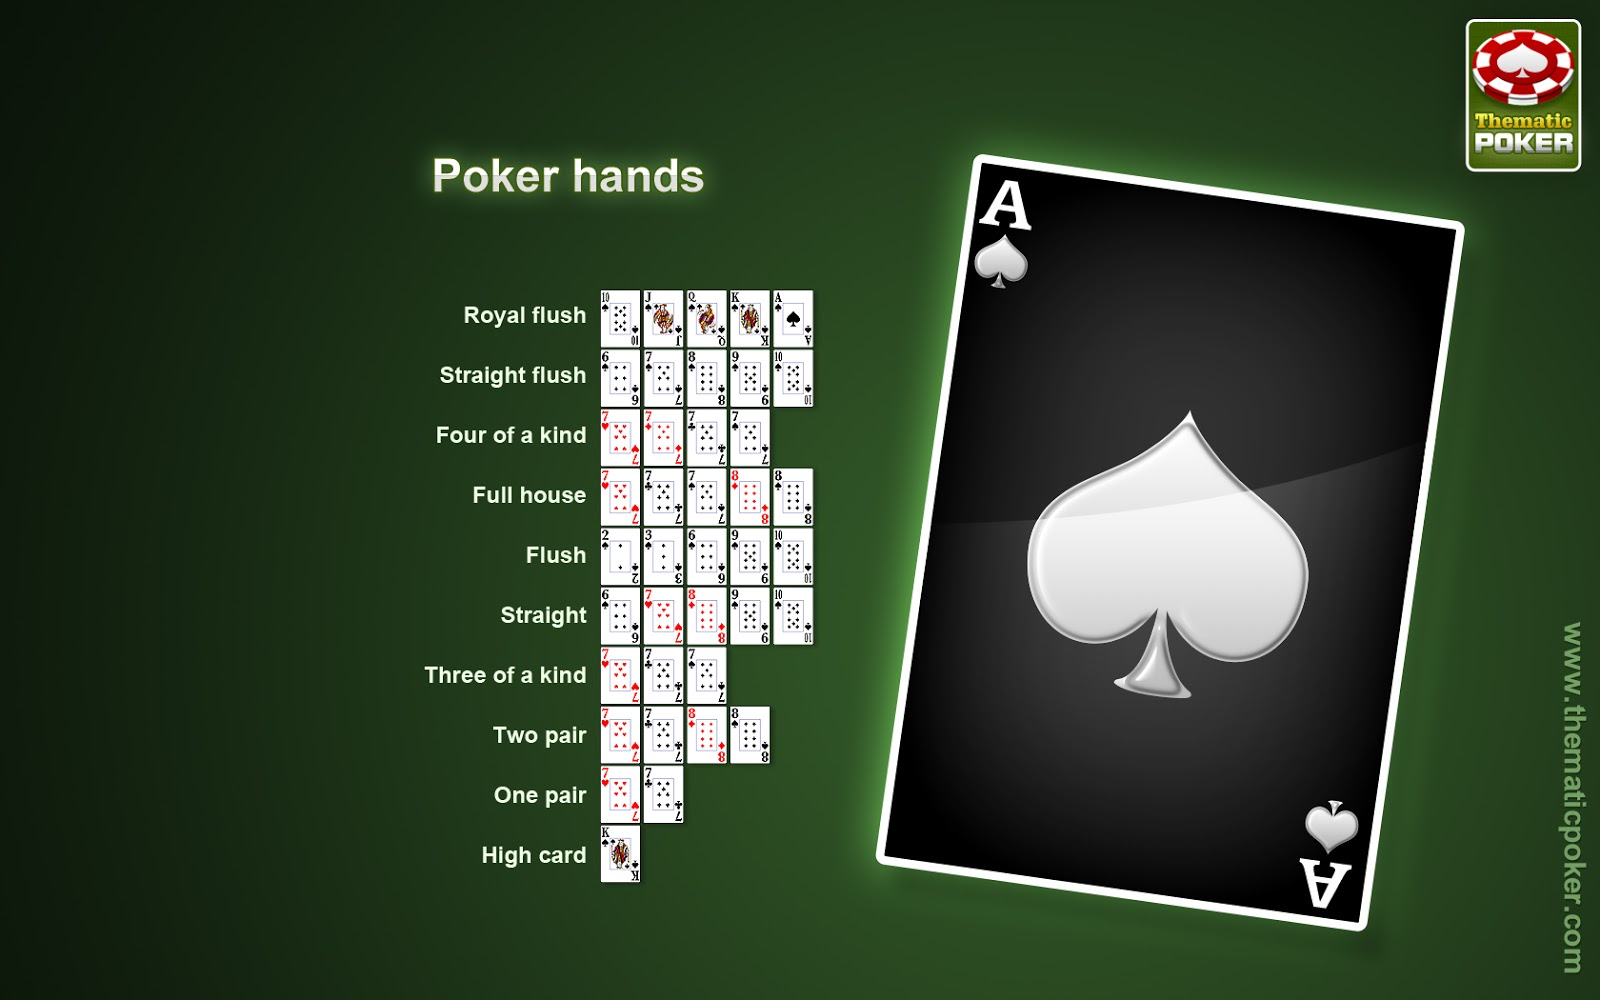 How to play texas holdem against the dealer